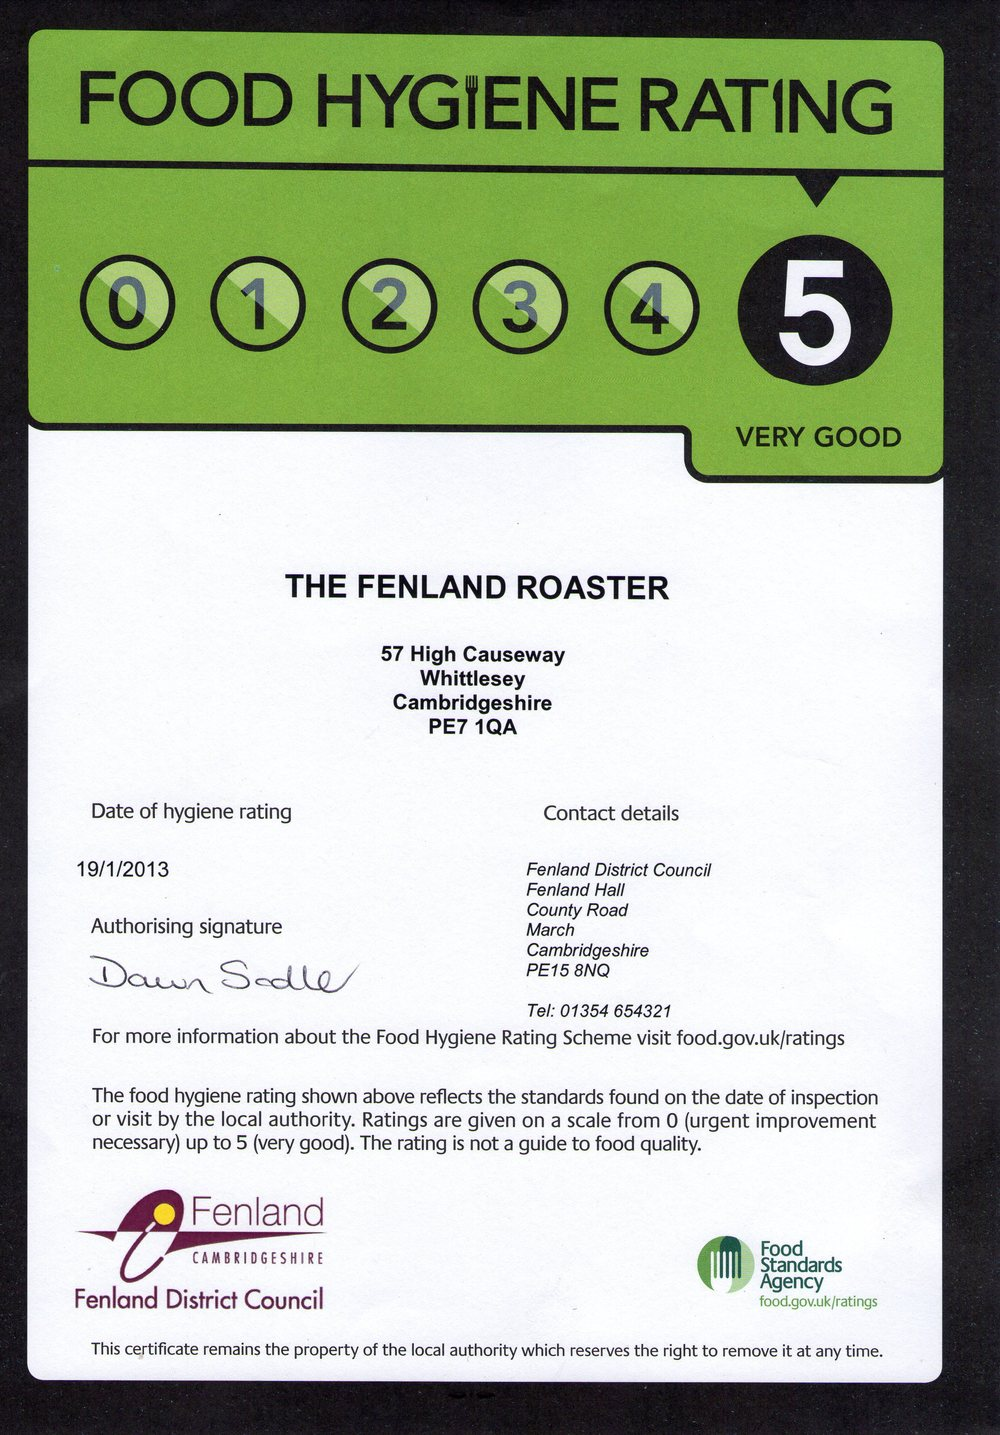 fenland-roaster-food-hygiene-rating.jpg